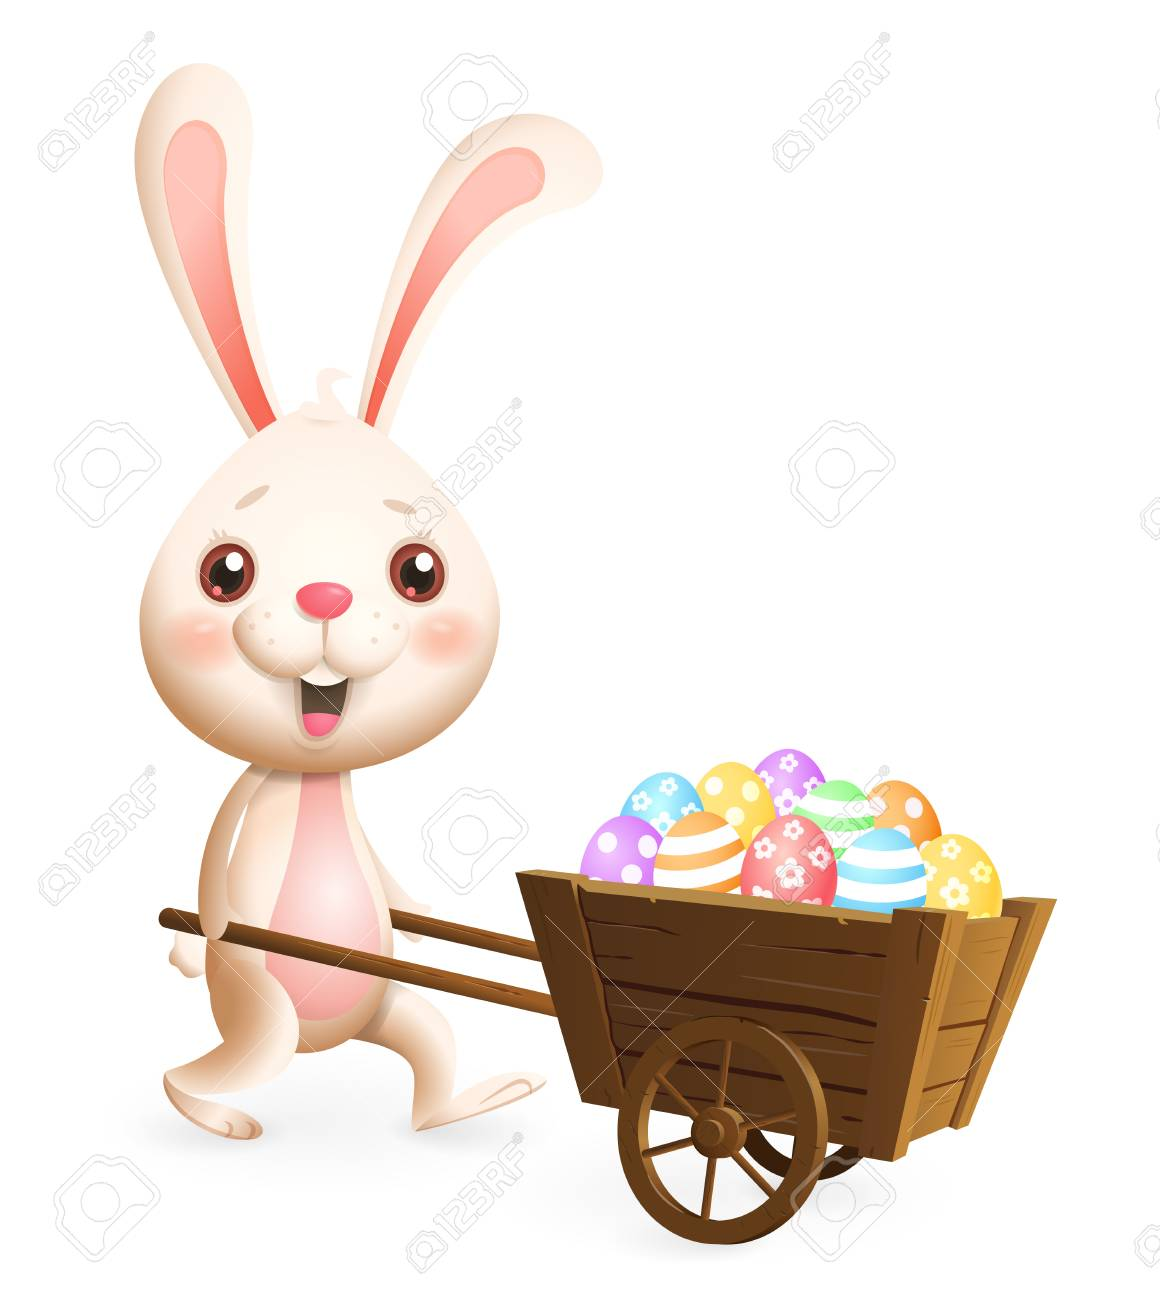 Easter bunny carrying cart with colorful decorated Easter eggs - isolated on white background - 117031329